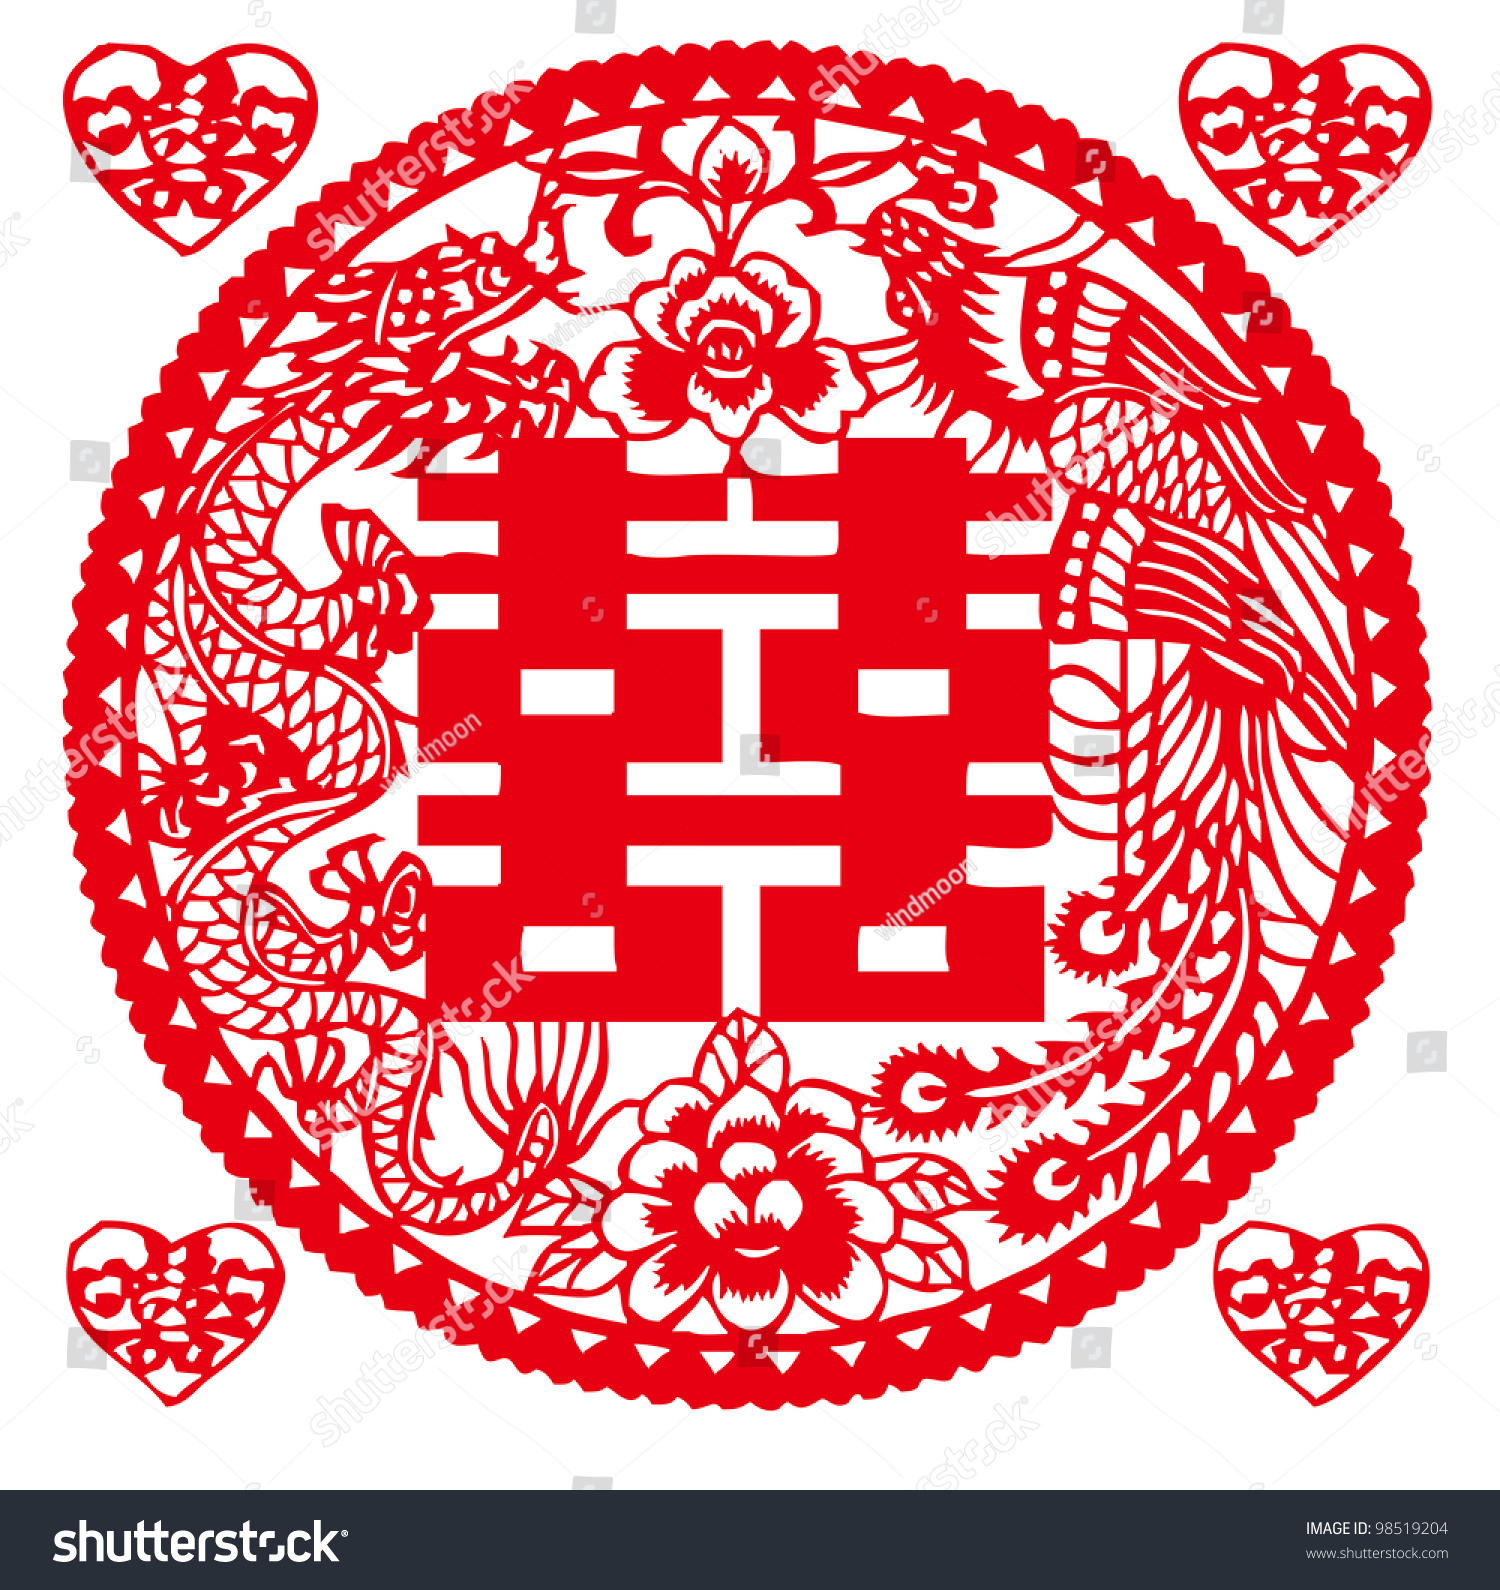 chinese paper cutting templates dragon - chinese paper cutting dragon and phoenix hi wedding